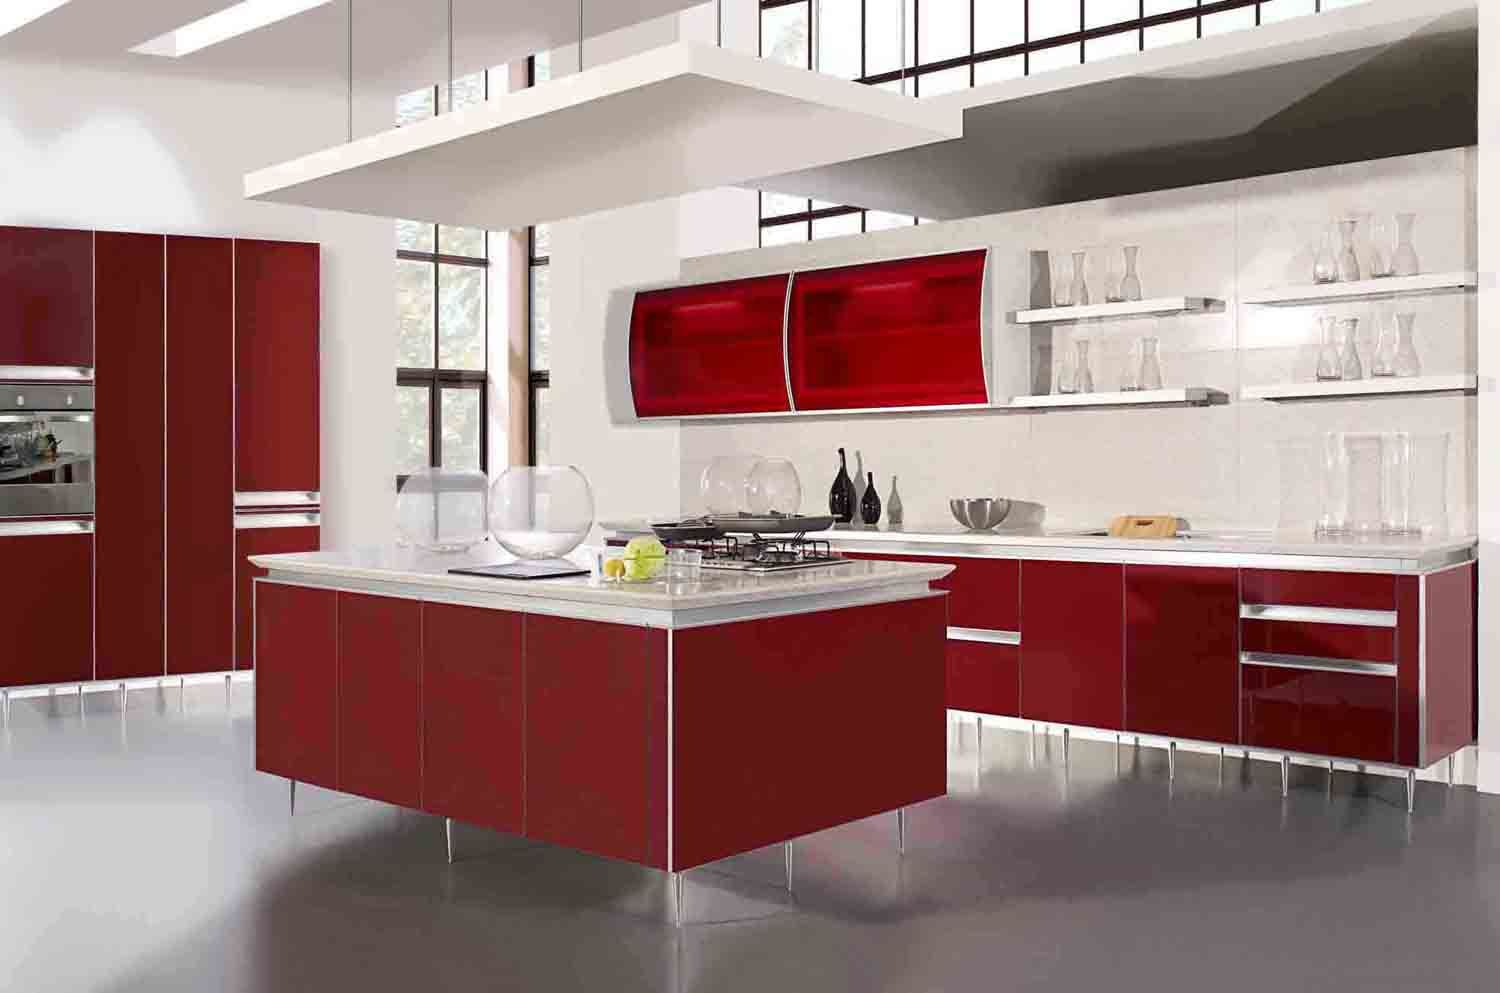 Remarkable Modern Kitchen Design Ideas 1500 x 993 · 76 kB · jpeg